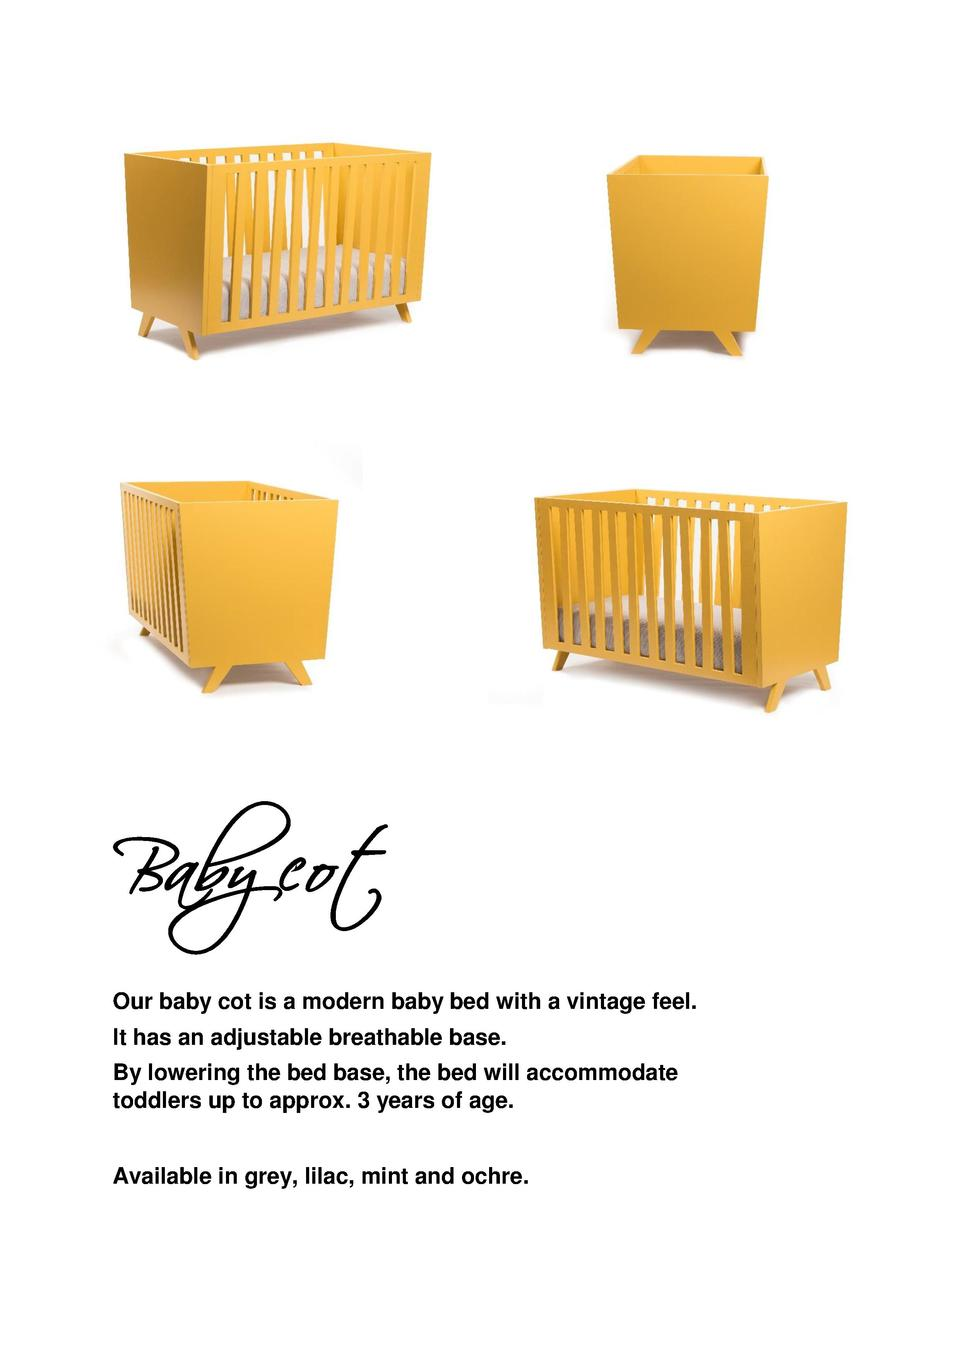 Baby cot Our baby cot is a modern baby bed with a vintage feel. It has an adjustable breathable base. By lowering the bed ...